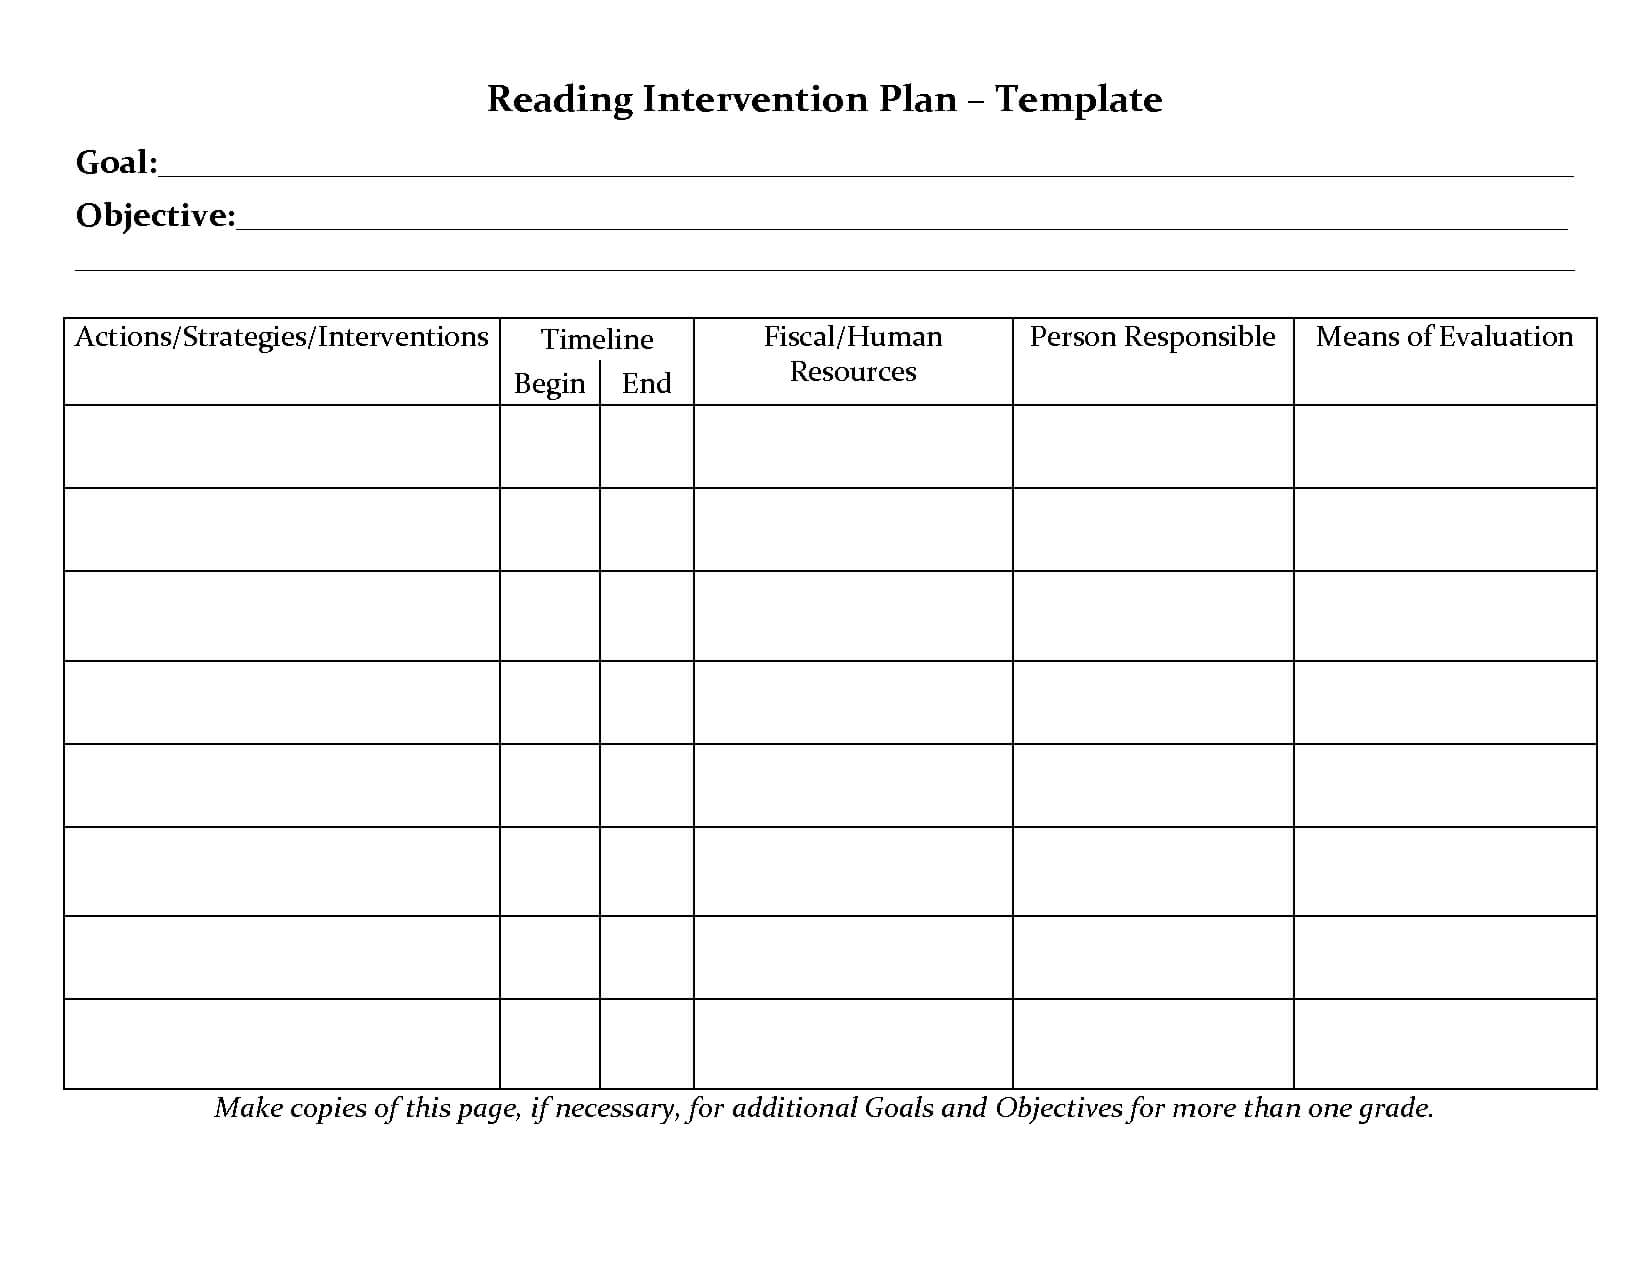 Student Planner Templates | Reading Intervention Plan For Intervention Report Template